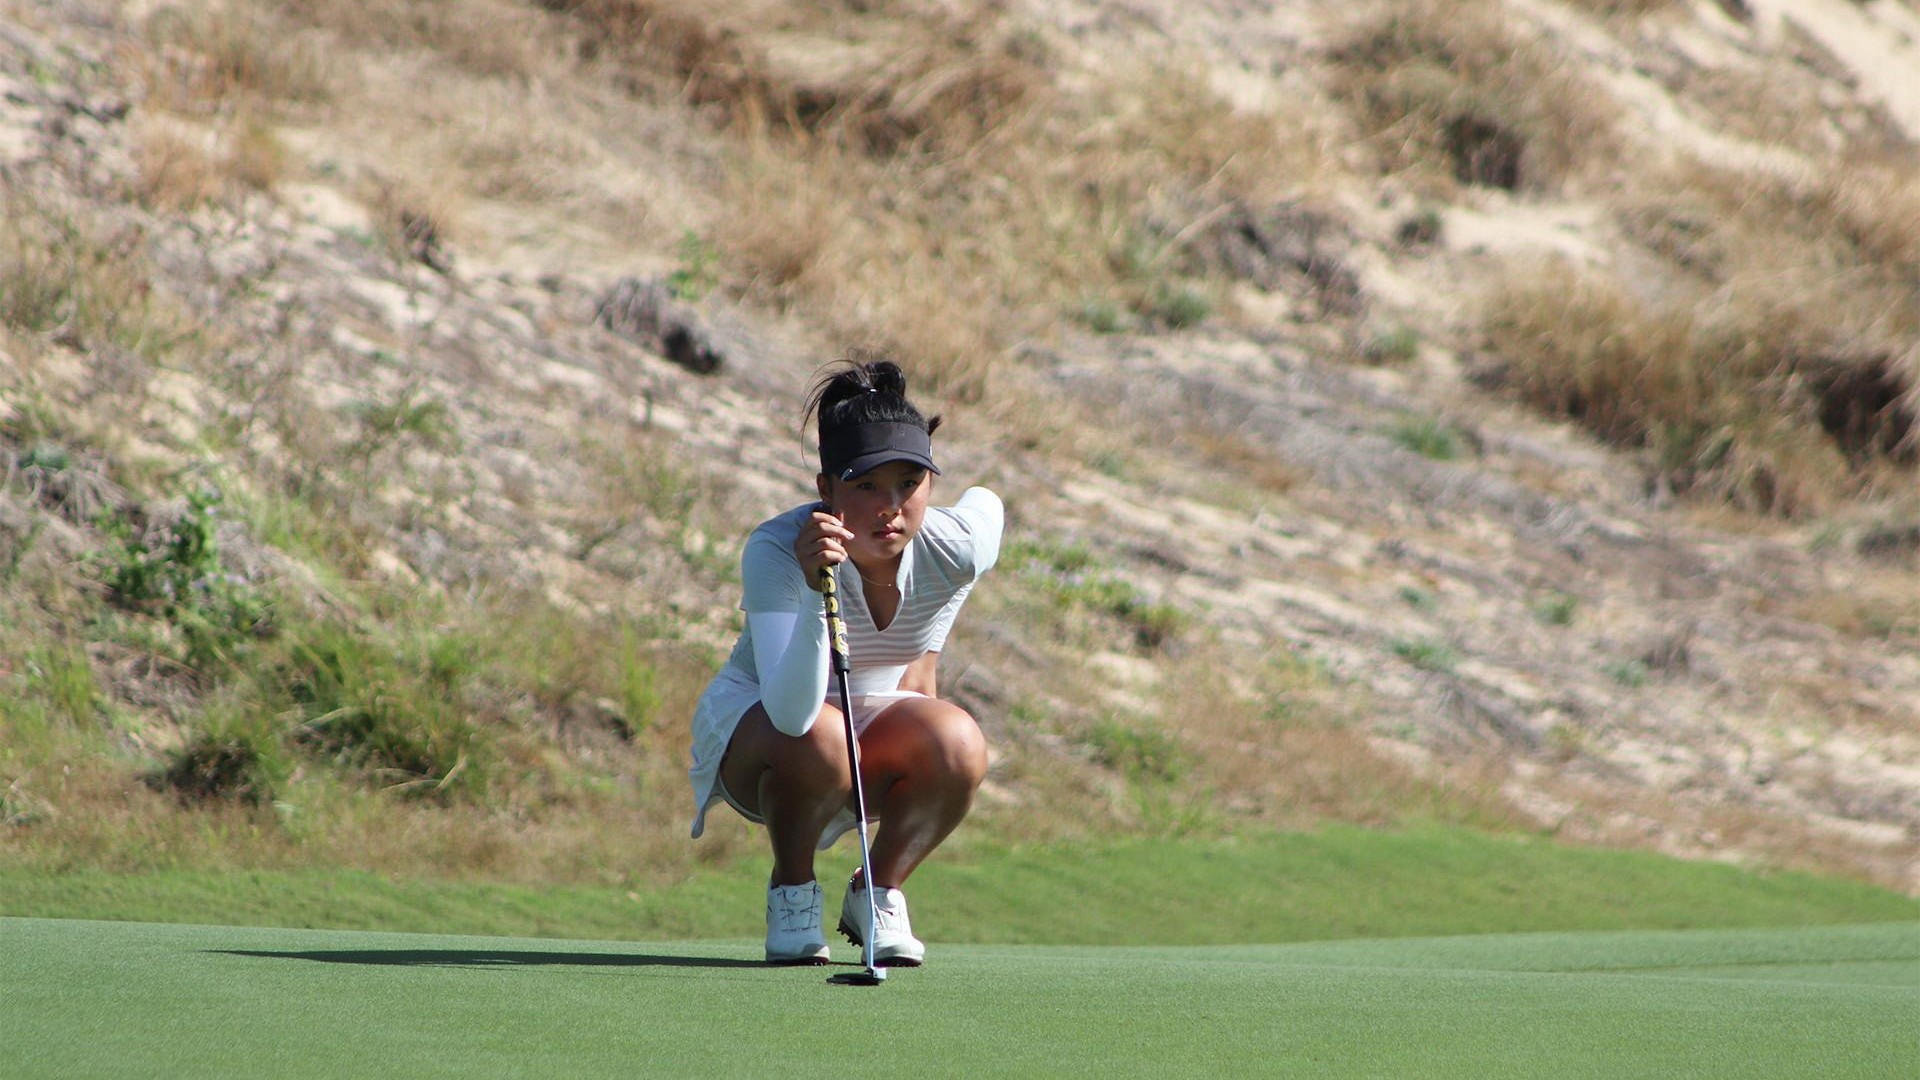 Yu Wen Lu reading her putt at the JGTA Junior Aspirations at The Bluffs, one of the many players from the JGTA leading the charge in the fight against Covid-19